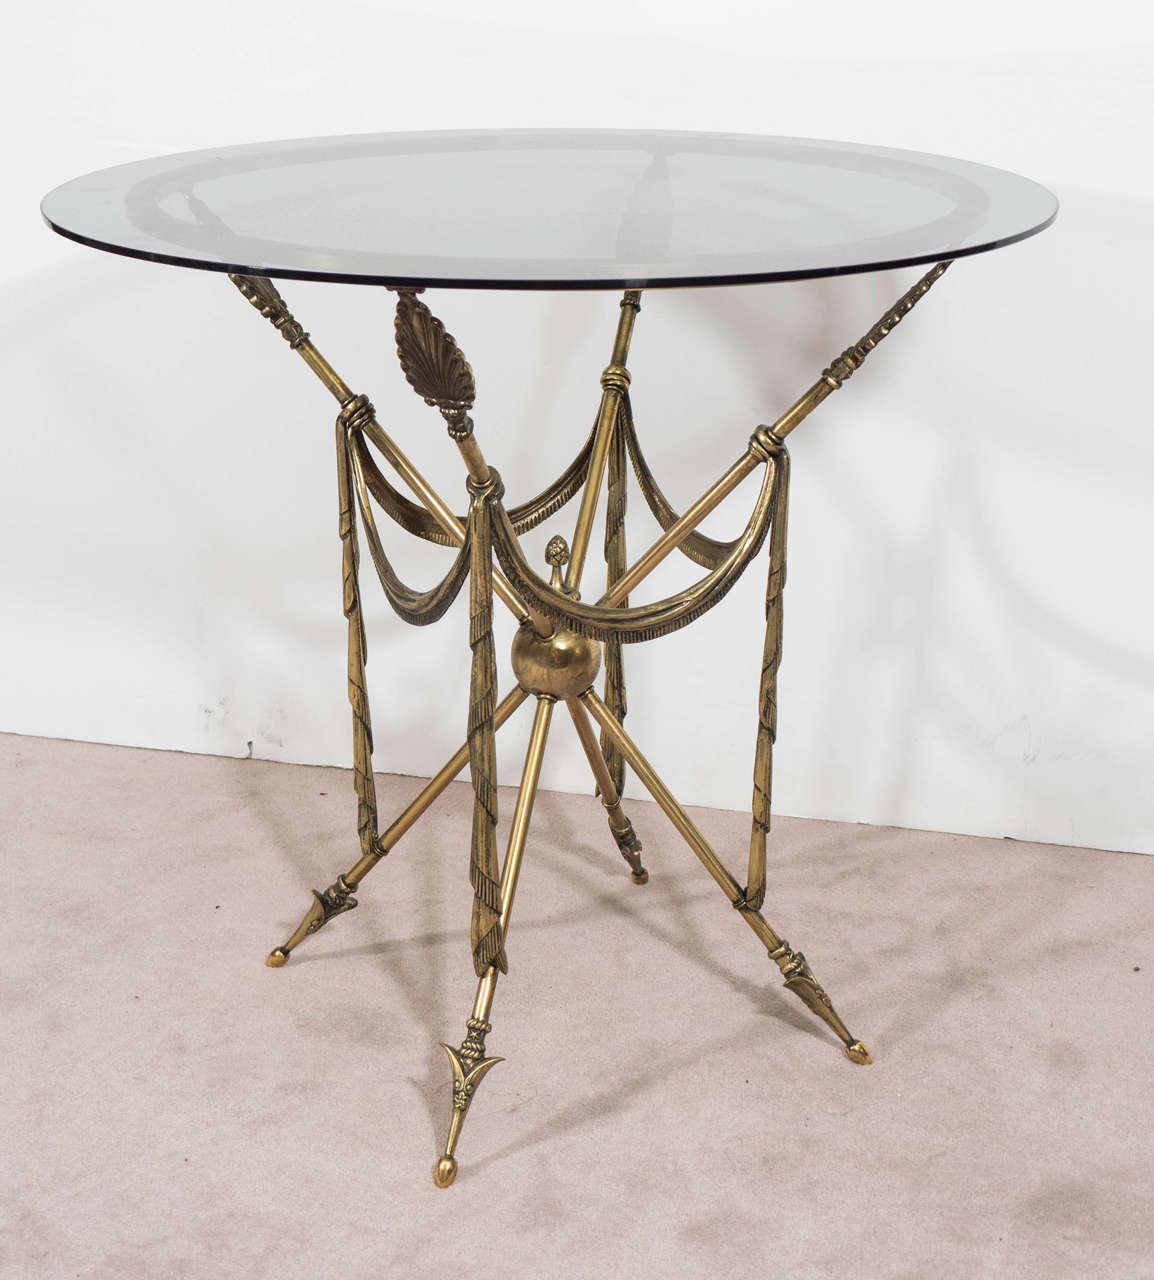 A vintage pair of French brass end or side tables, with arrow motif and neoclassical elements, circa 1950s. Smoked glass tops above a brass ring base, supported by four crossed legs, each stylized with anthemion vanes, terminating into decorative